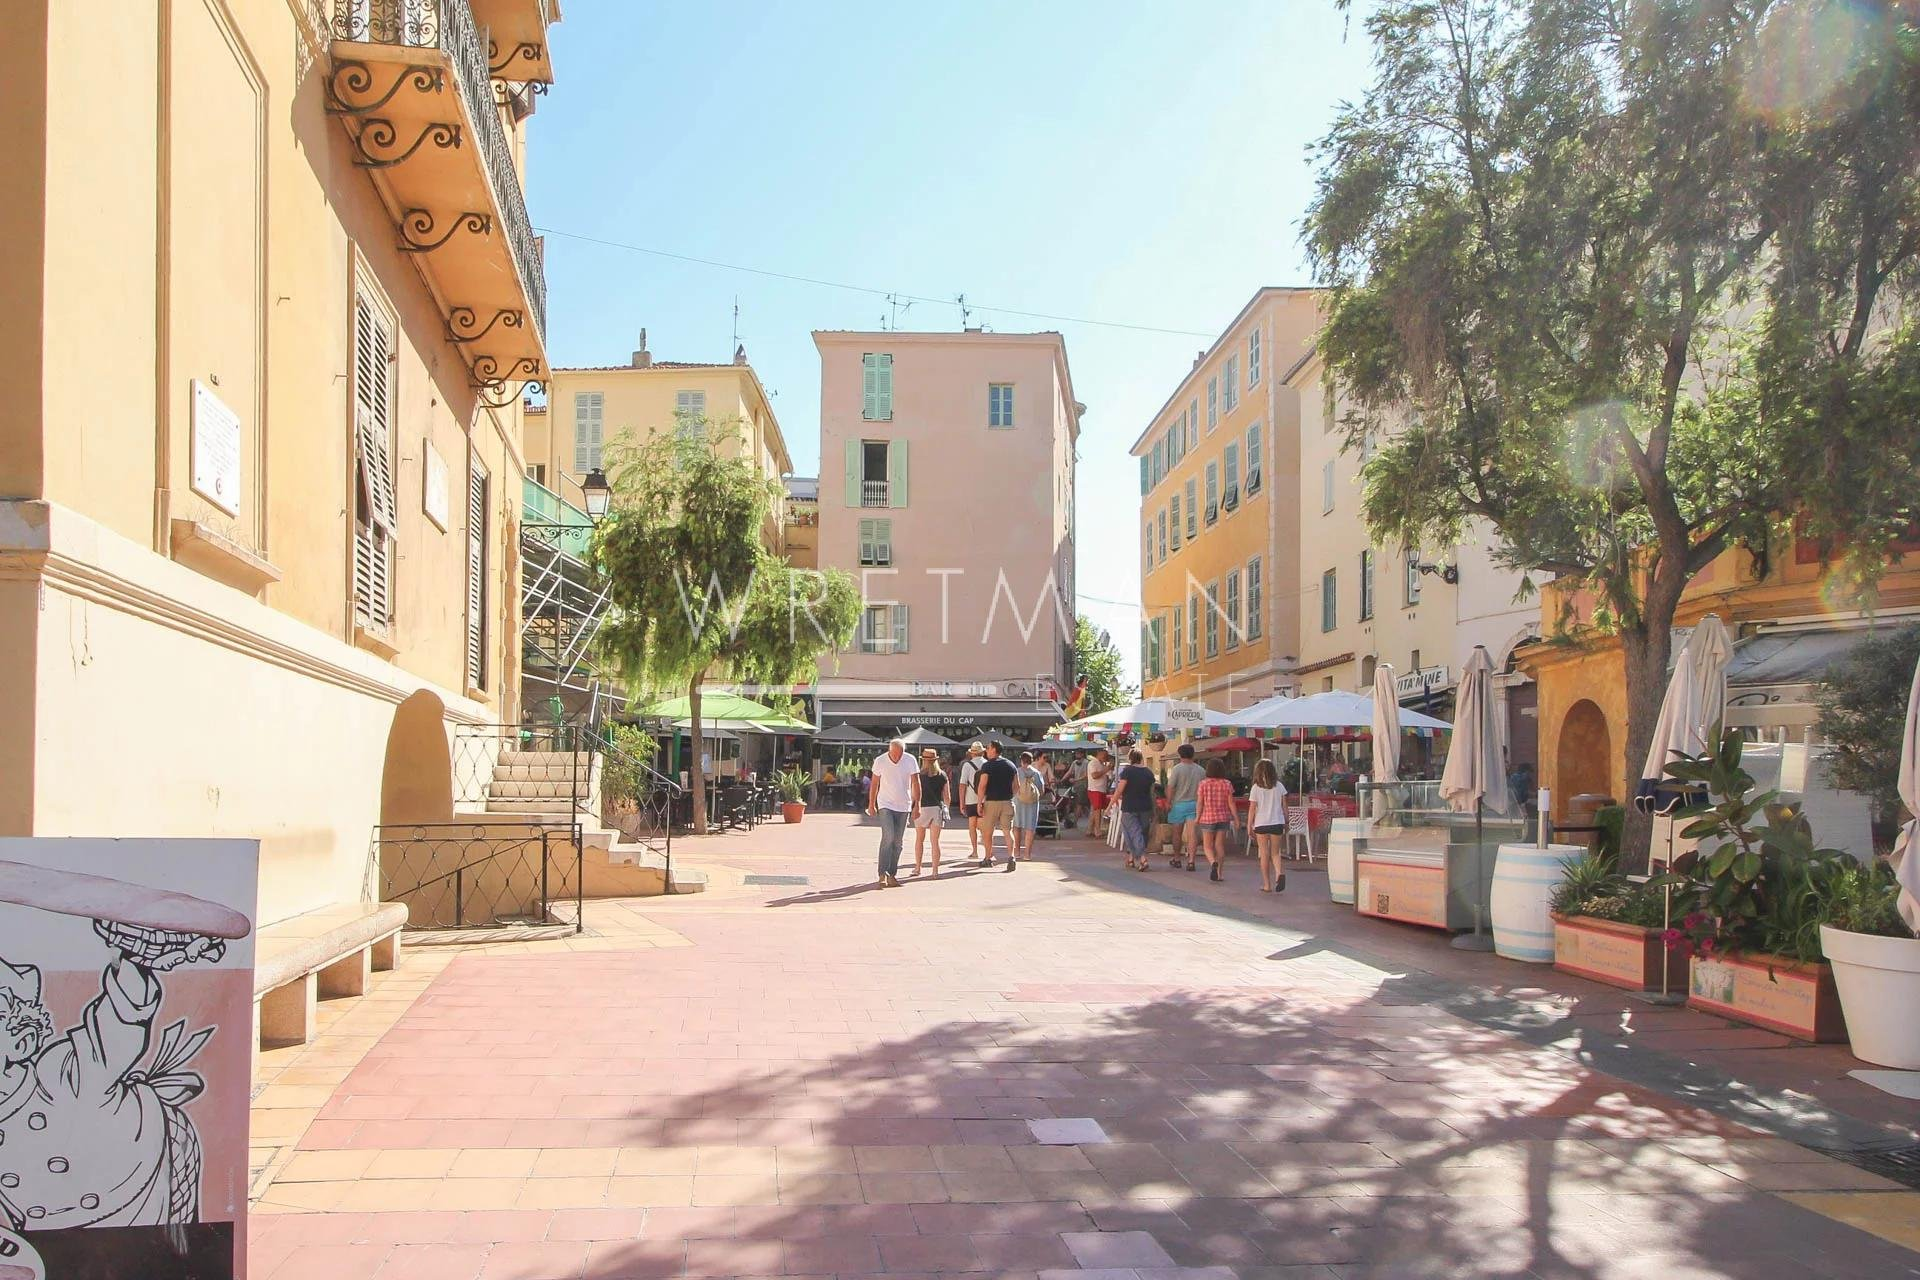 Commercial lease and activity - Menton Old Town